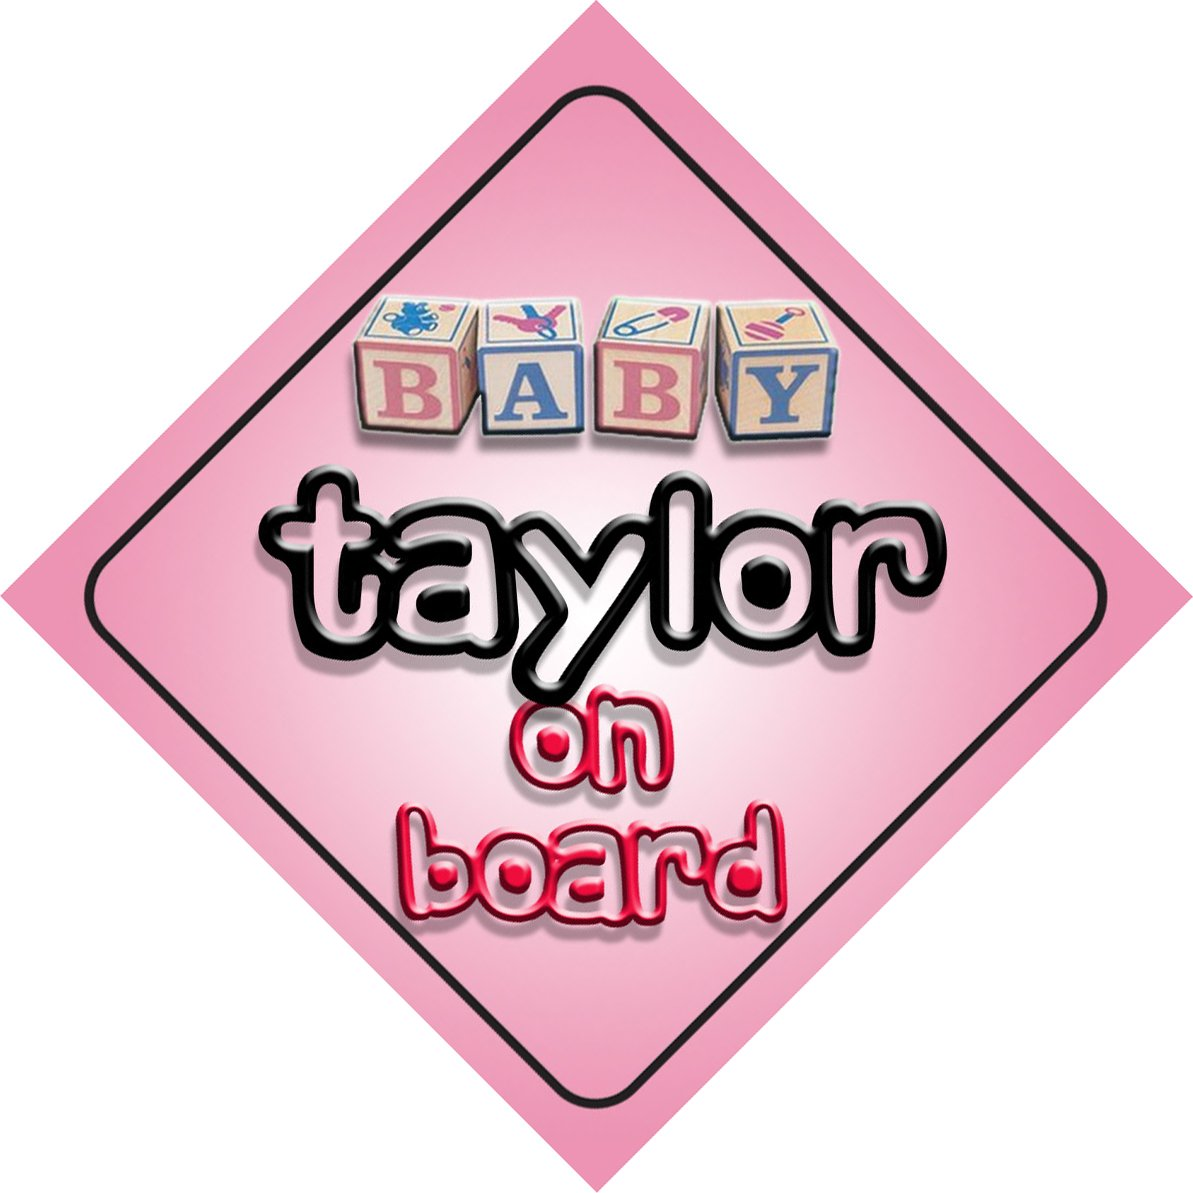 Baby Girl Taylor on board novelty car sign gift//present for new child//newborn baby